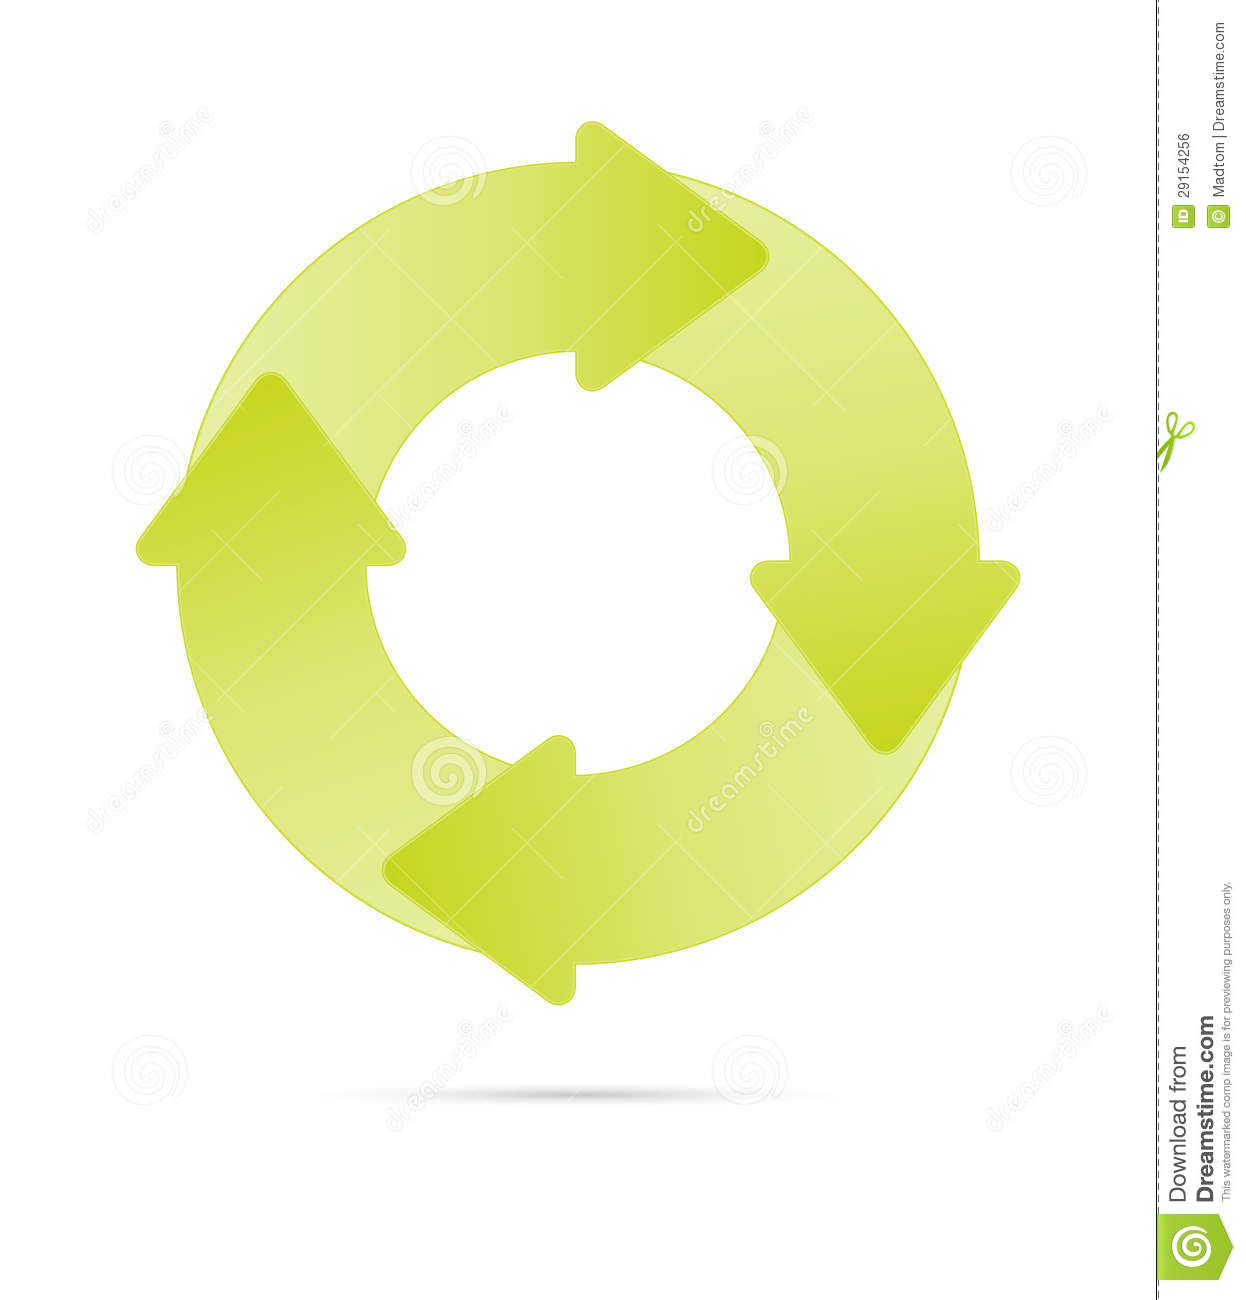 Eco Cycle Diagram Royalty Free Stock Image